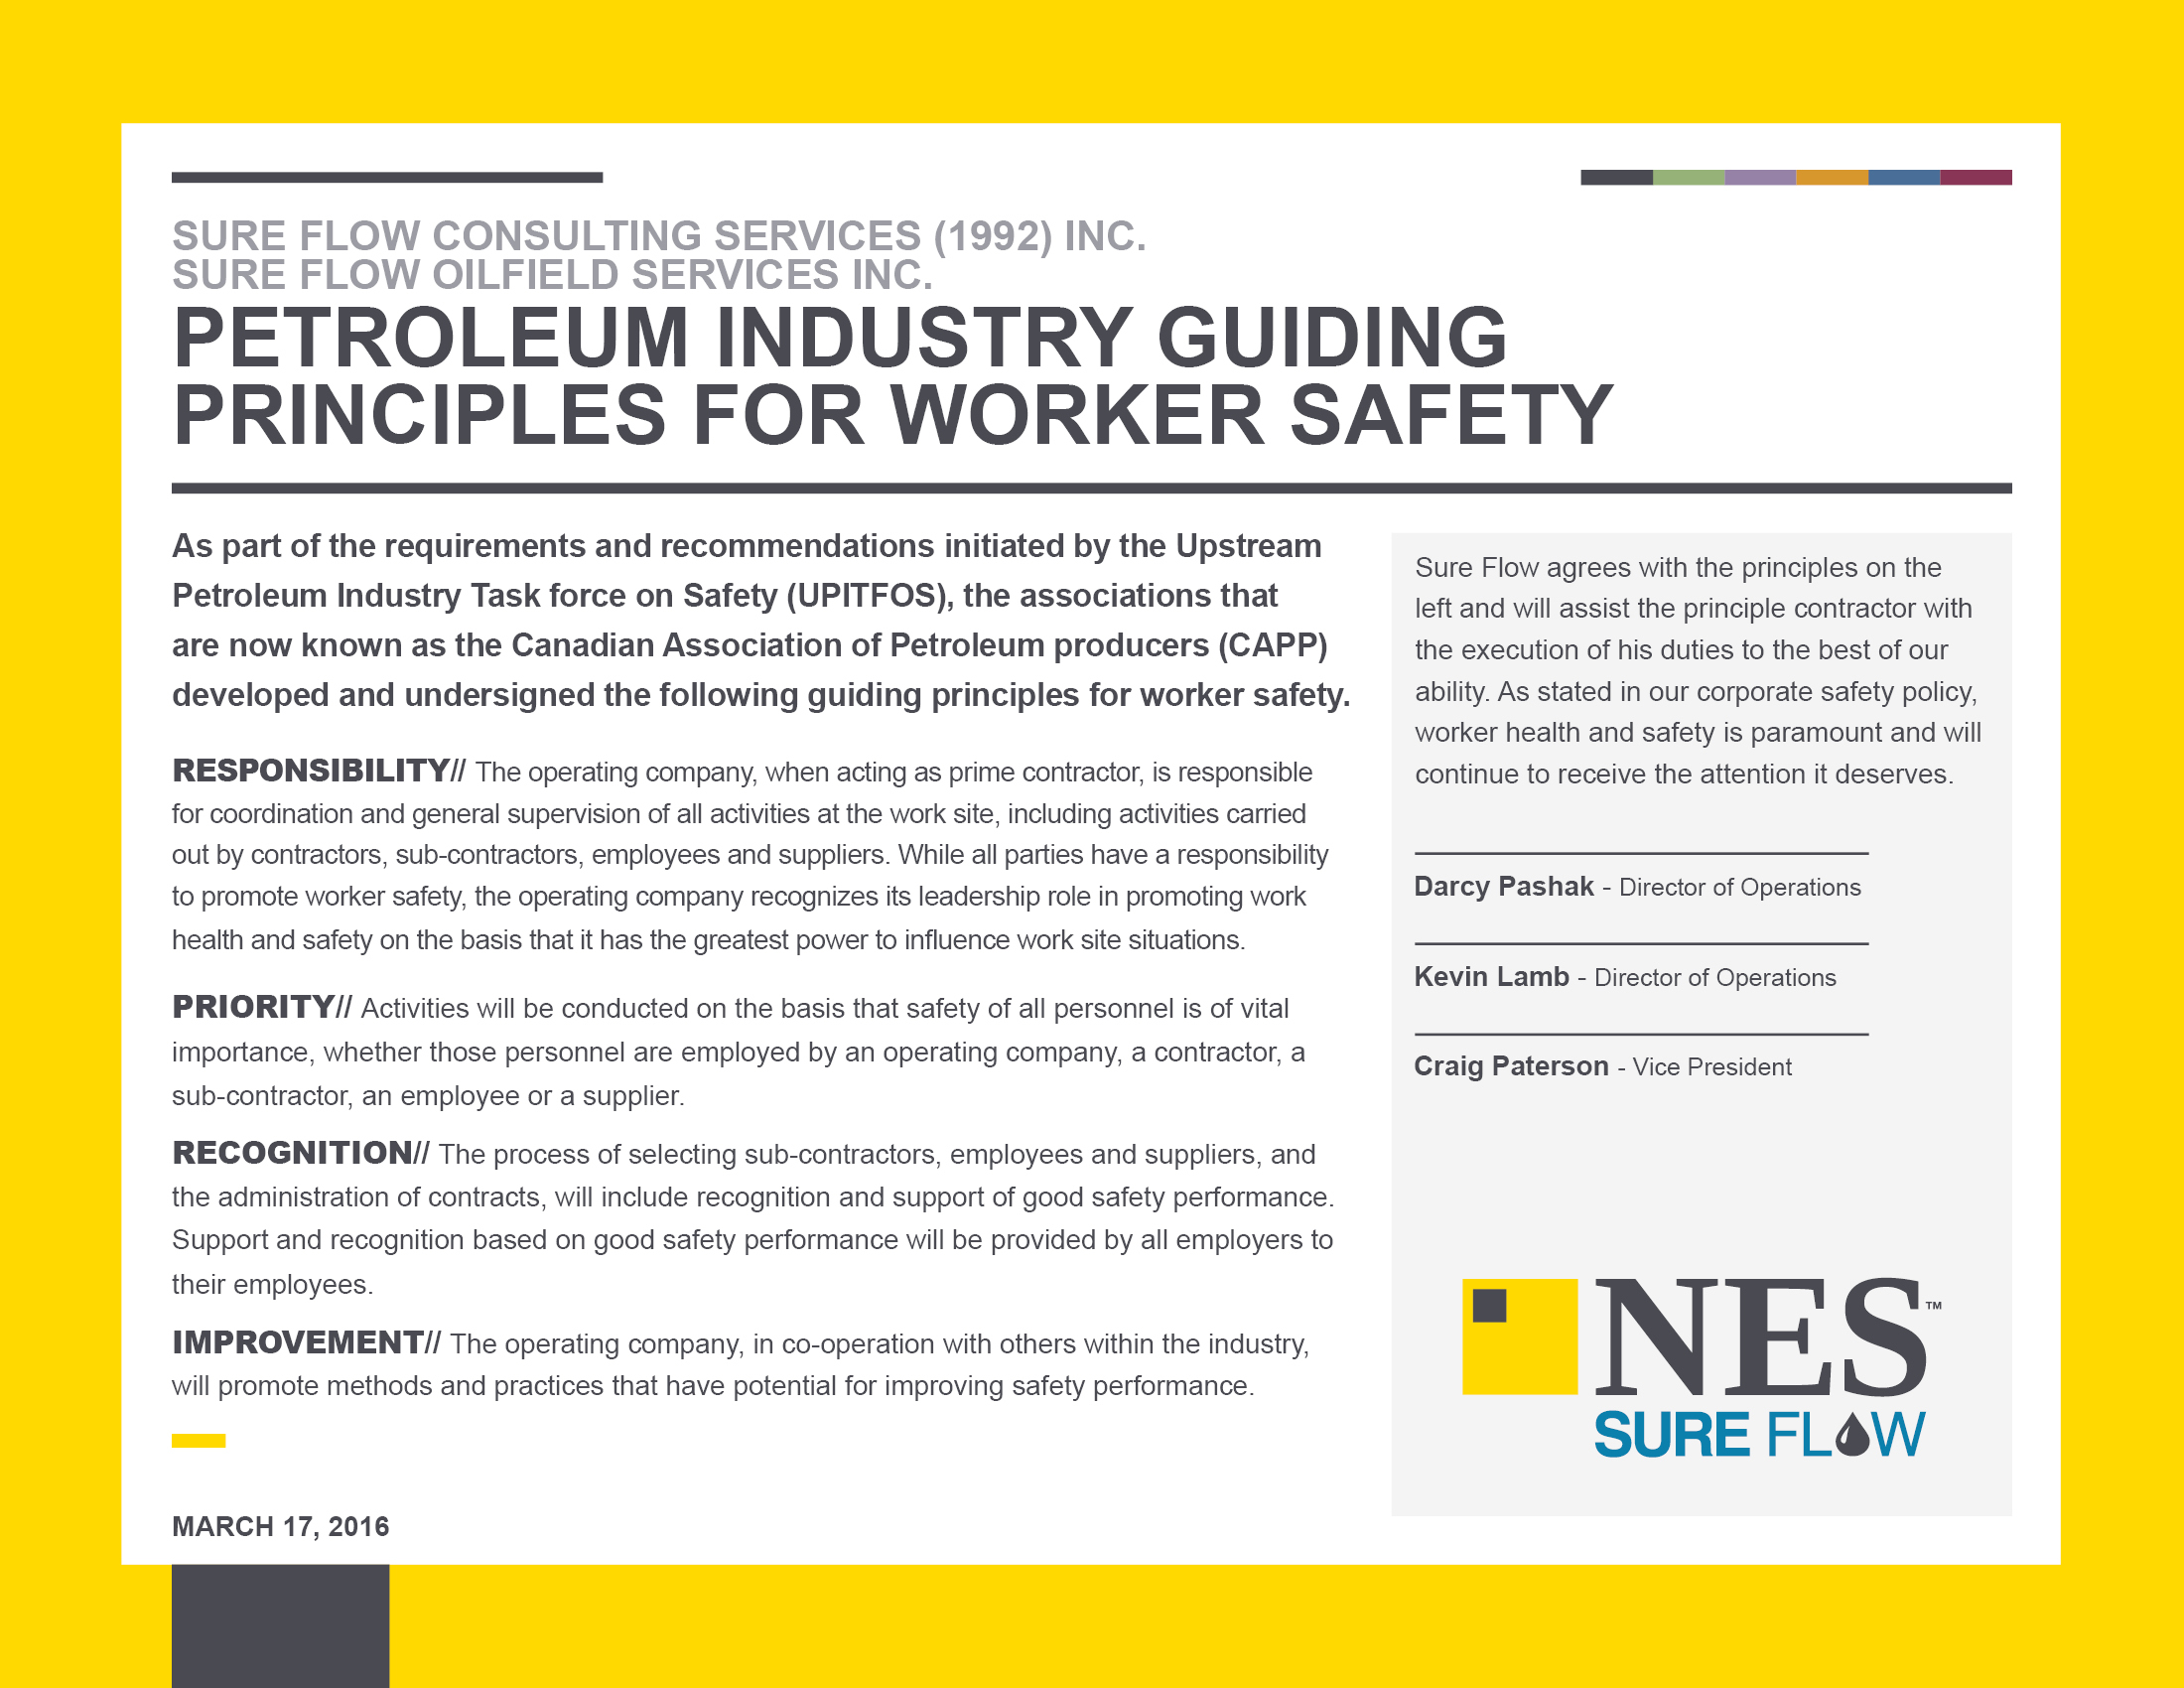 petroleum industry guiding principles for worker safety 2016